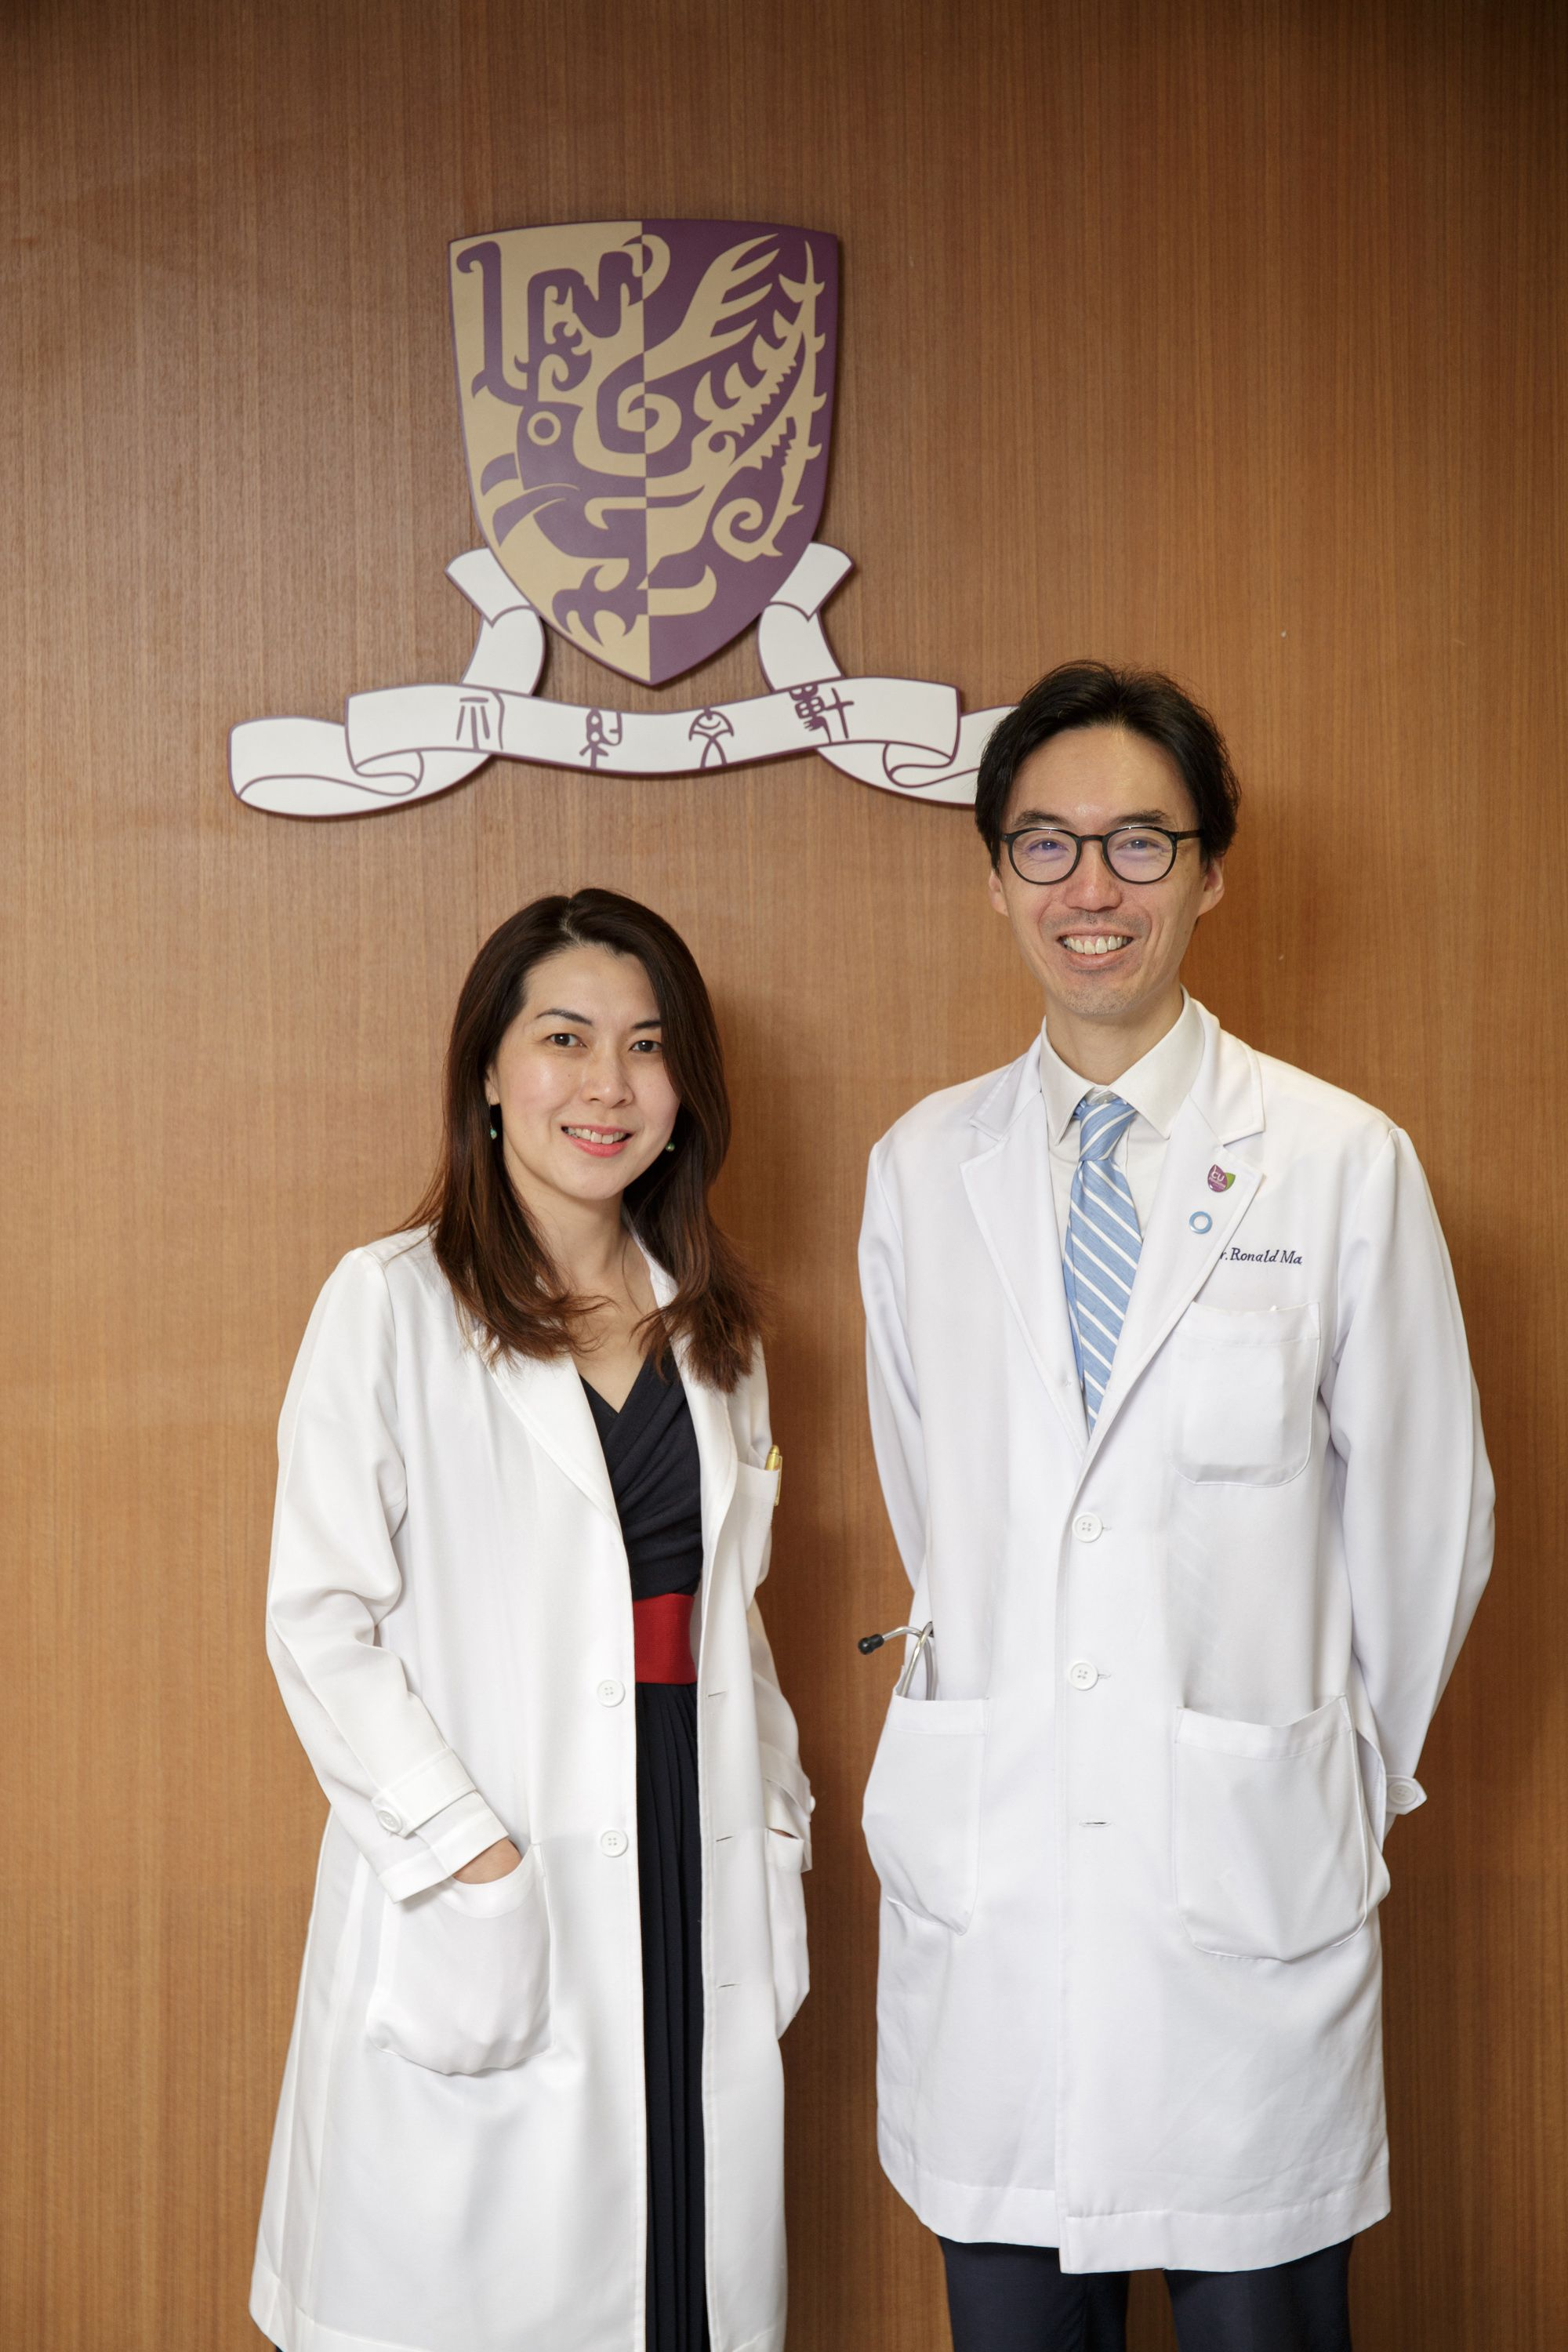 Professor Ronald Ching Wan Ma (right),  Professor and Head of Division of Endocrinology and Diabetes, Department of Medicine and Therapeutics, Faculty of Medicine, and Professor Siew Chien Ng (left), Professor, Division of Gastroenterology and Hepatology, Department of Medicine and Therapeutics, Faculty of Medicine, CUHK